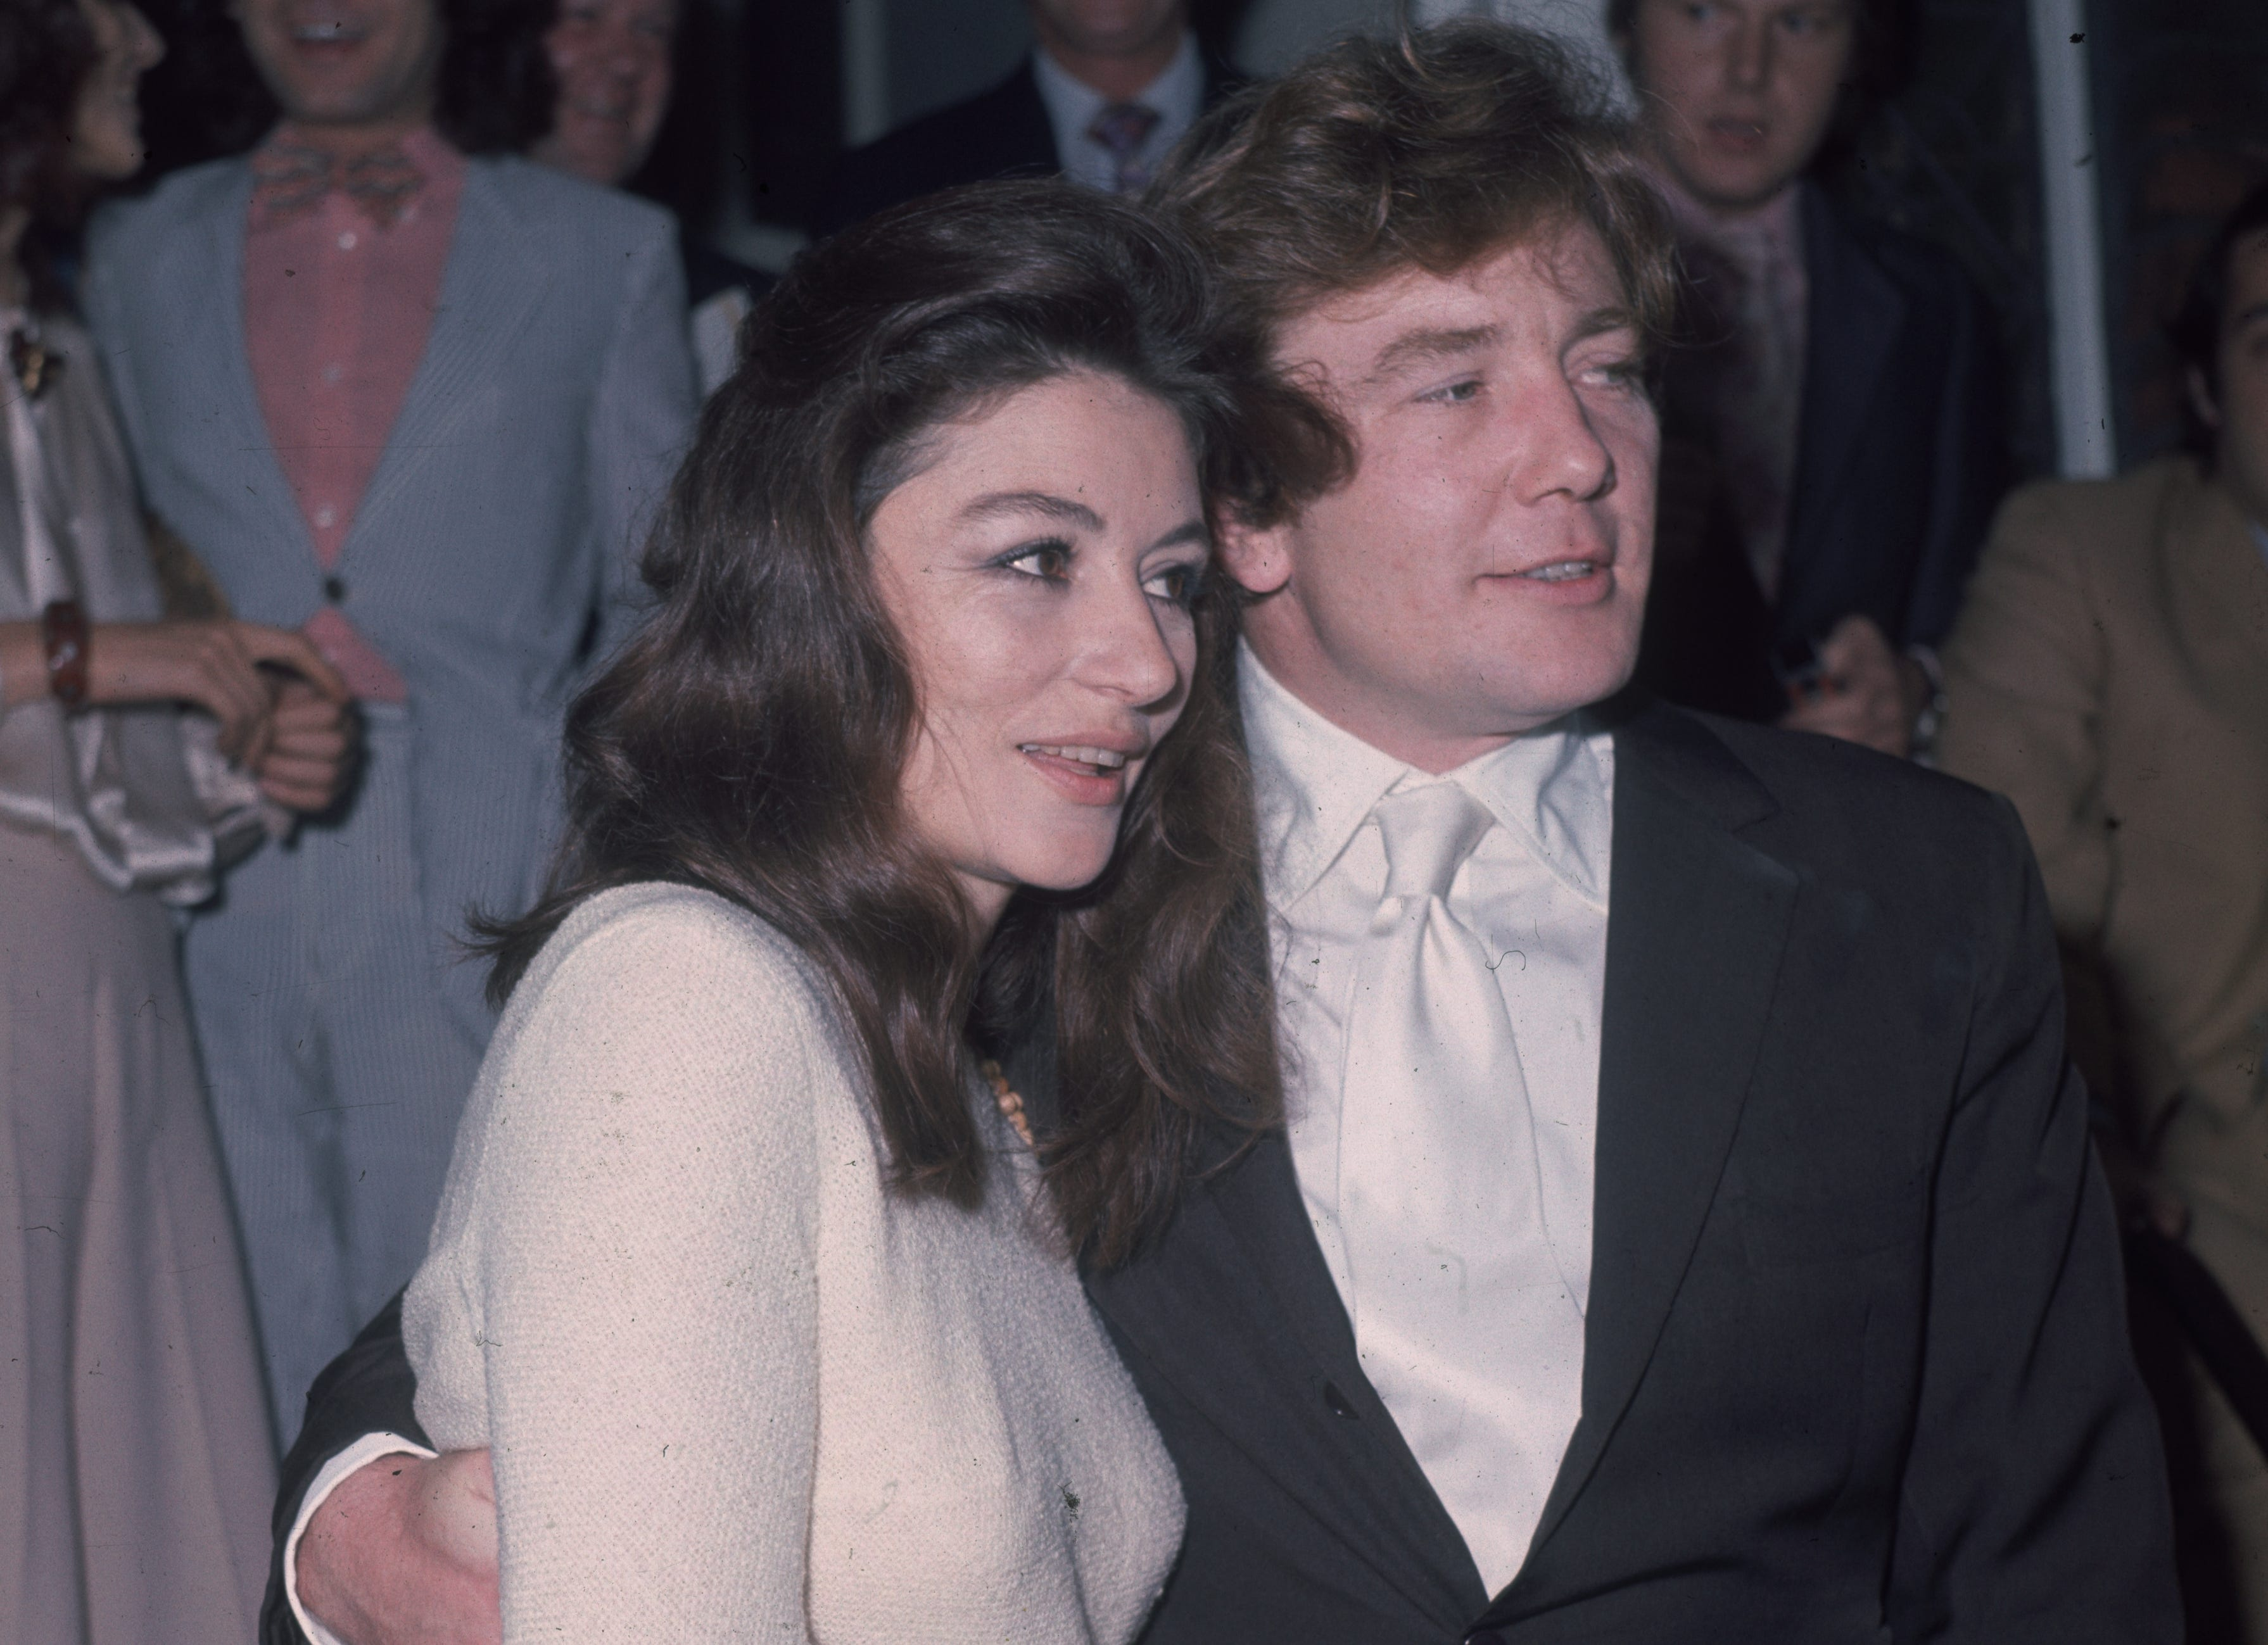 1970:  Actor Albert Finney with his arm round his bride, French film actress Anouk Aimee (born Nicole Fran-oise Dreyfus).